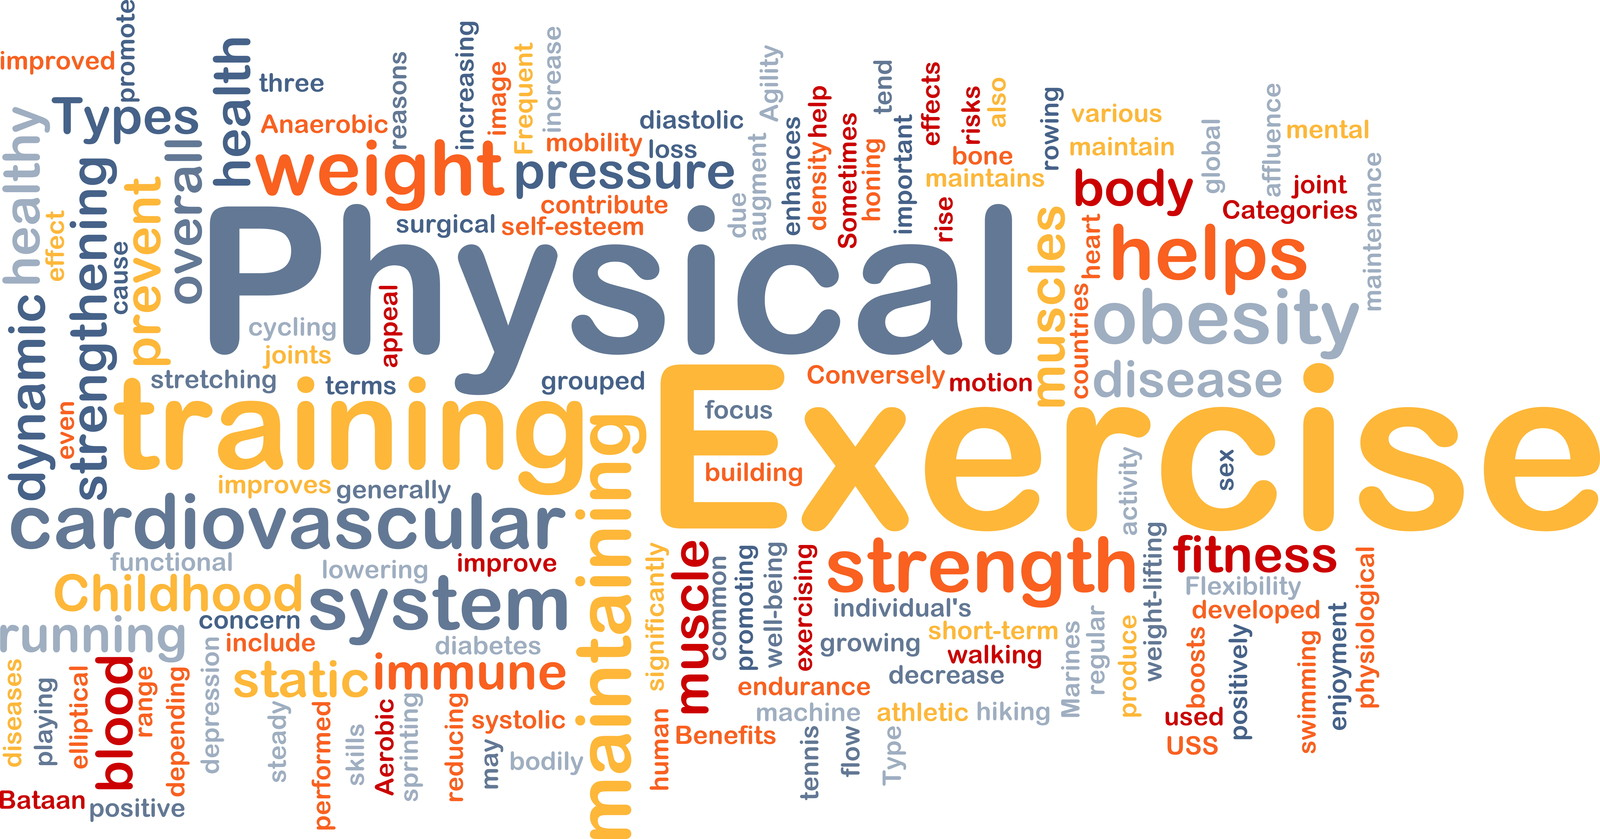 016 Call Doctor Benefits Of Physical Fitness Importance Exercise Essay Fascinating In Hindi Language On Sports And Full